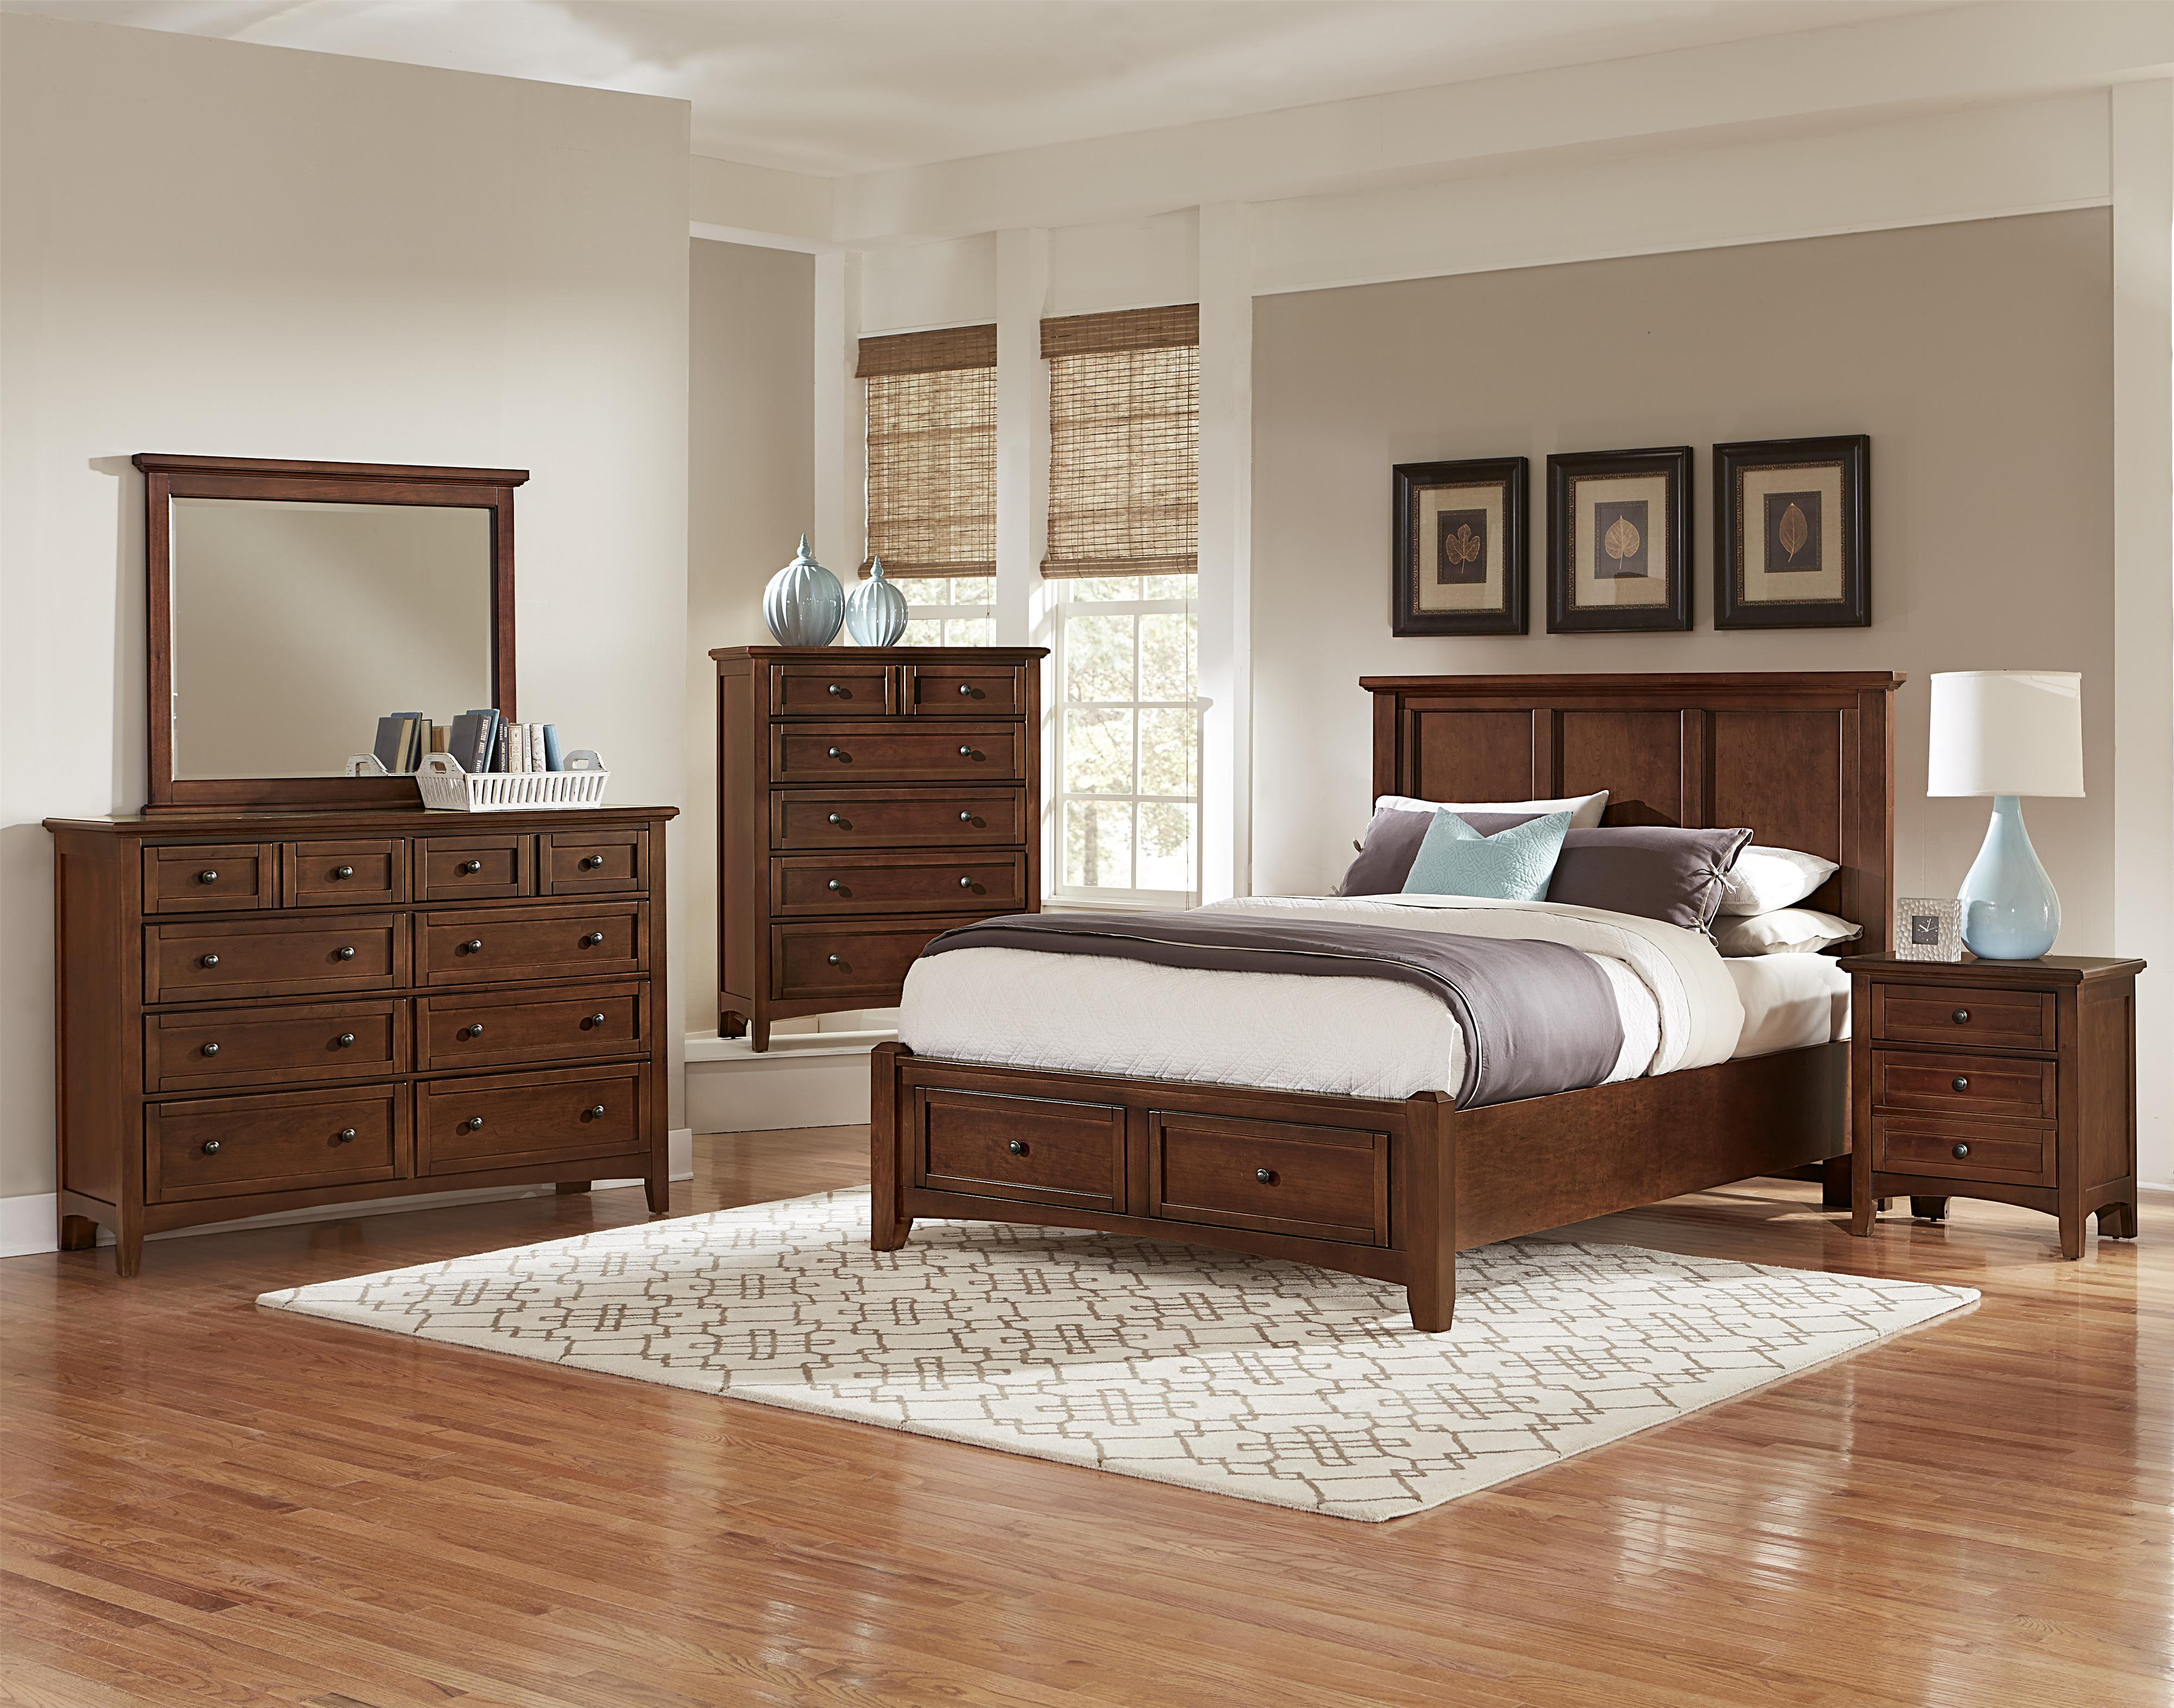 Bonanza King Bedroom Group by Vaughan Bassett at Rooms for Less